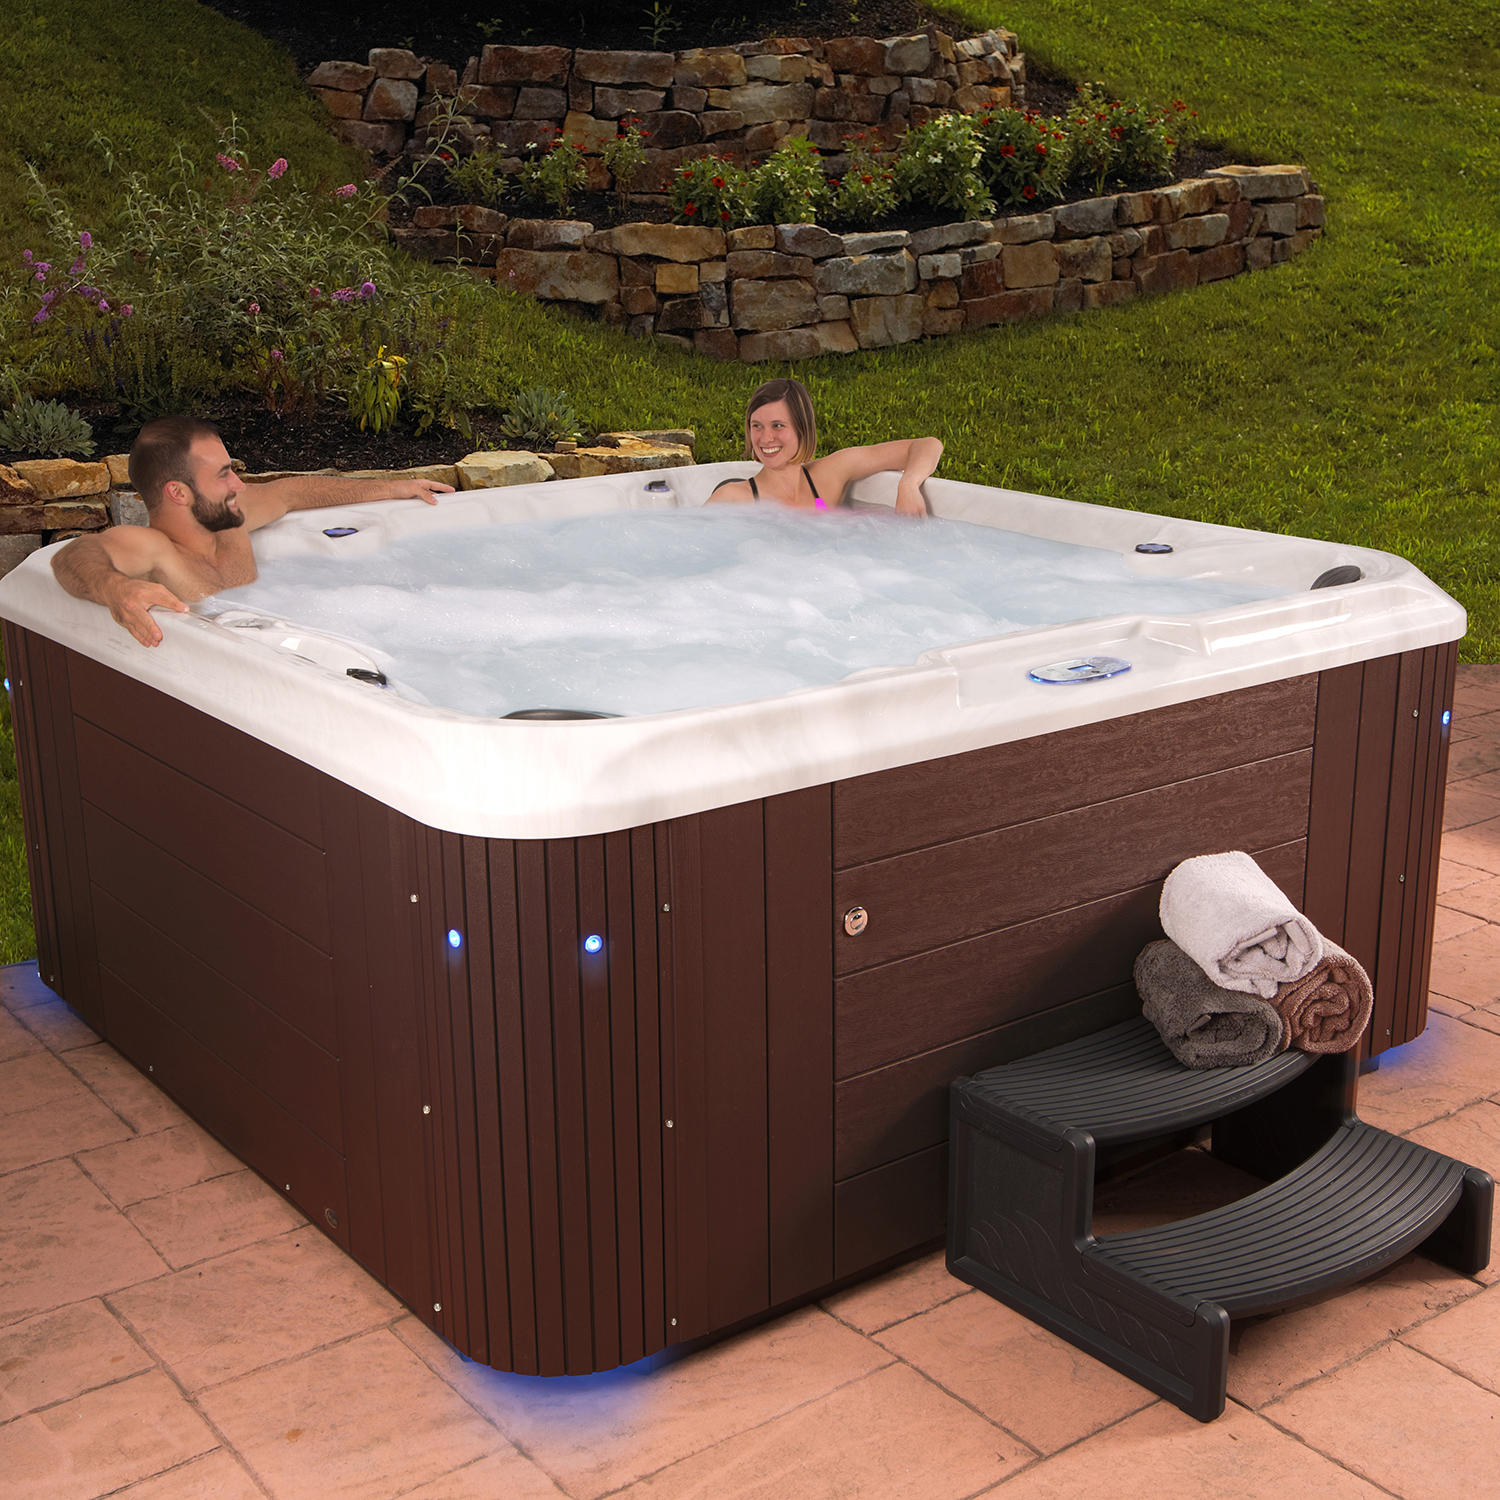 Everlast Spas Indulgence 100 Jet